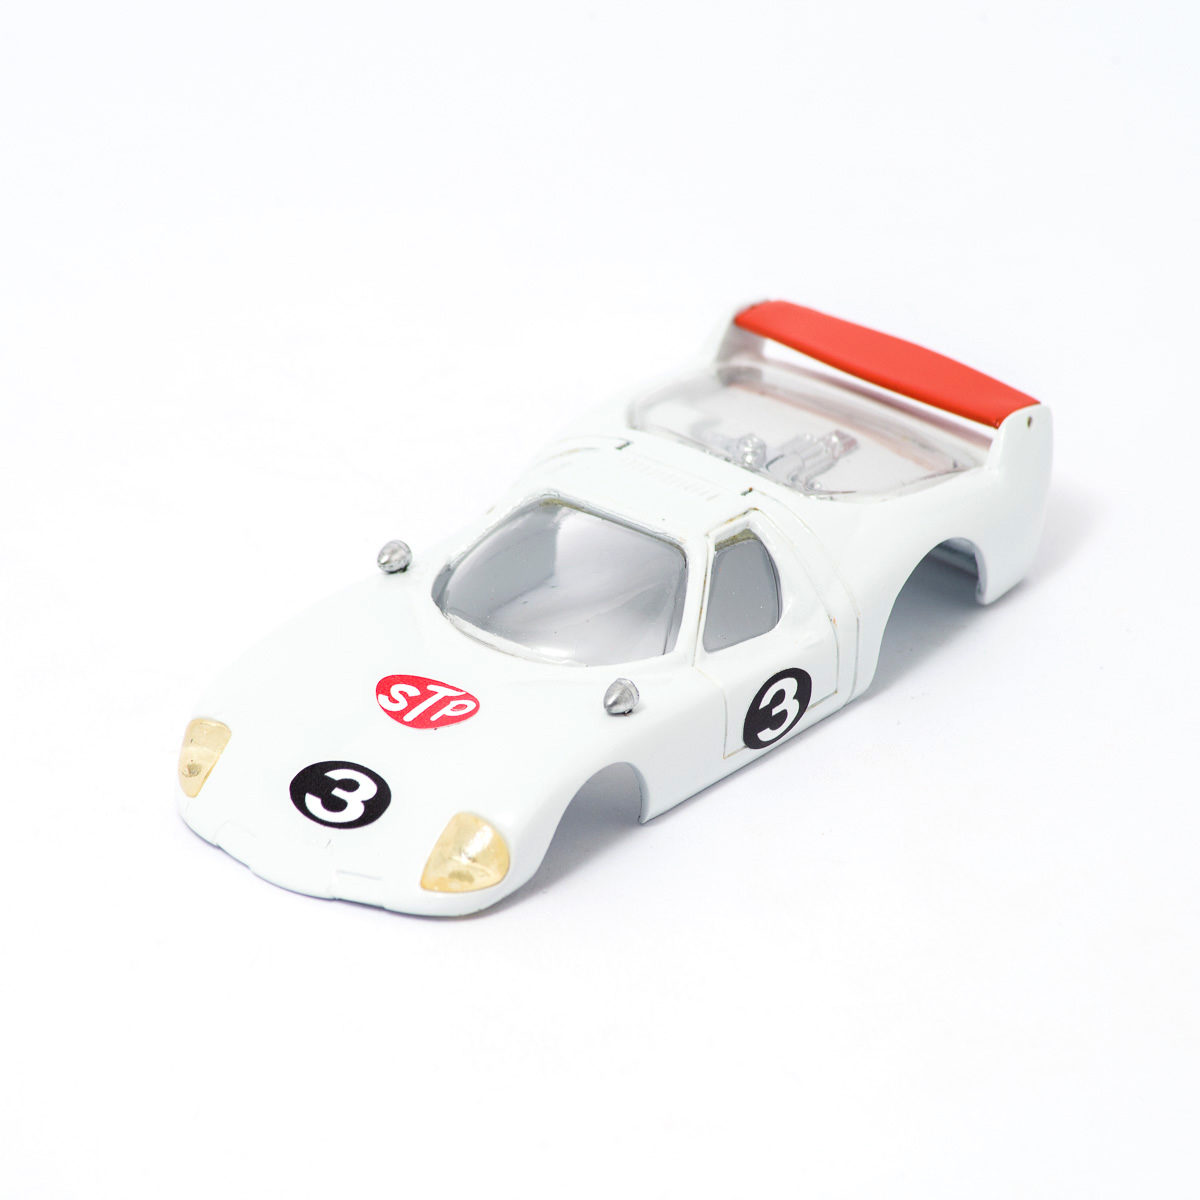 Slot Car Body BRE Samurai 1/32 white/red